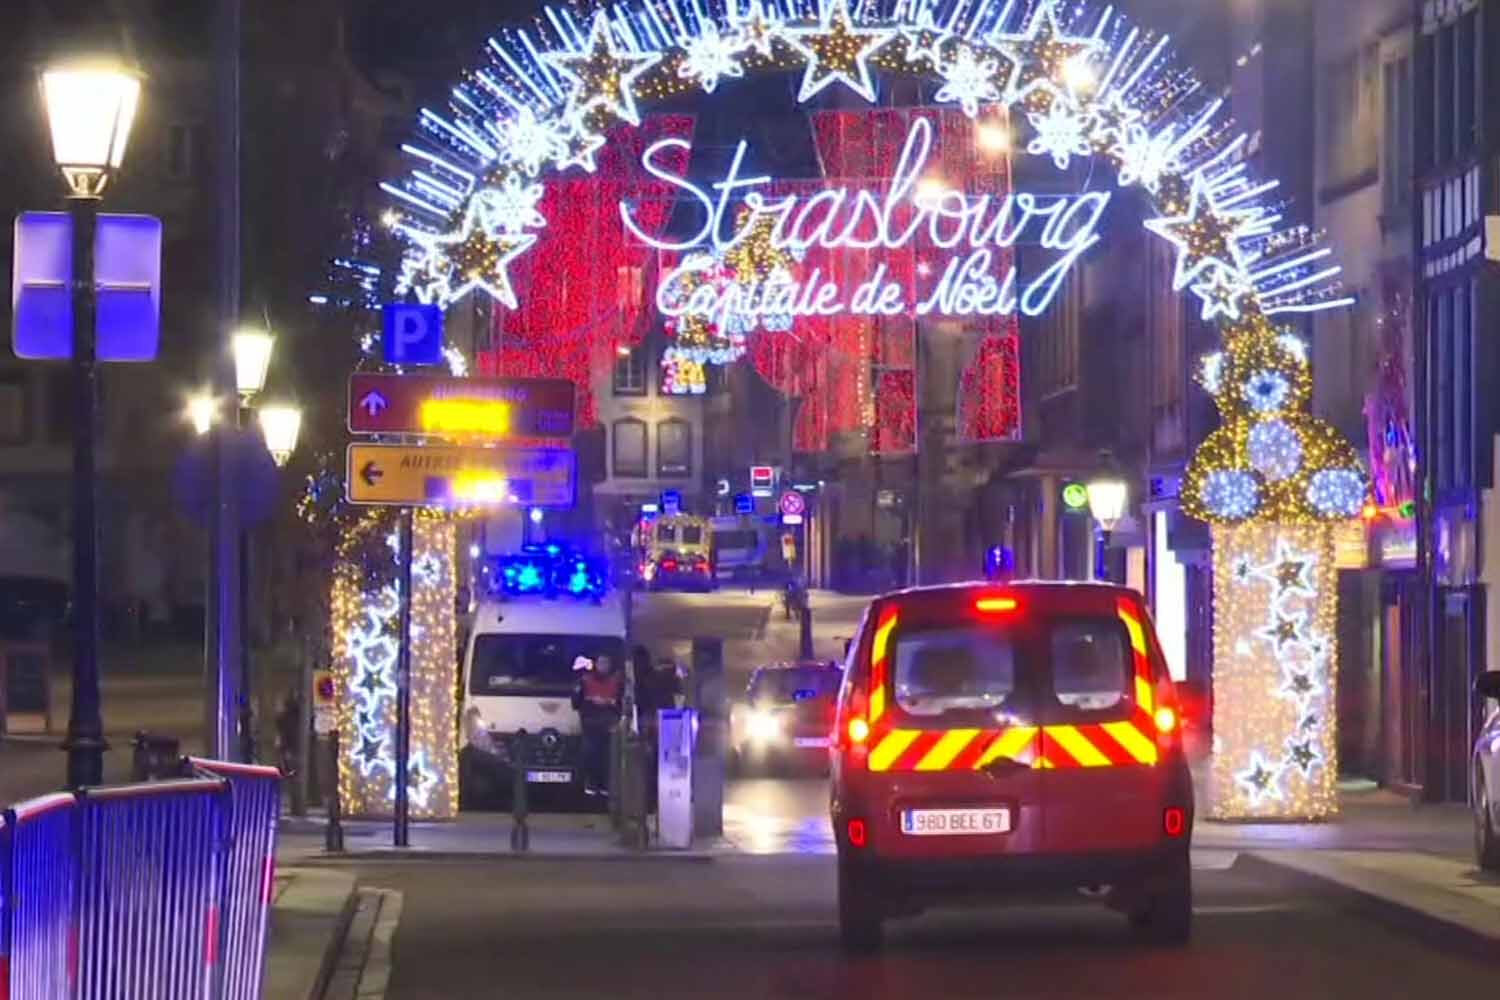 Strasbourg Terrorist attack: an illuminati False Flag for World Chaos and WW3